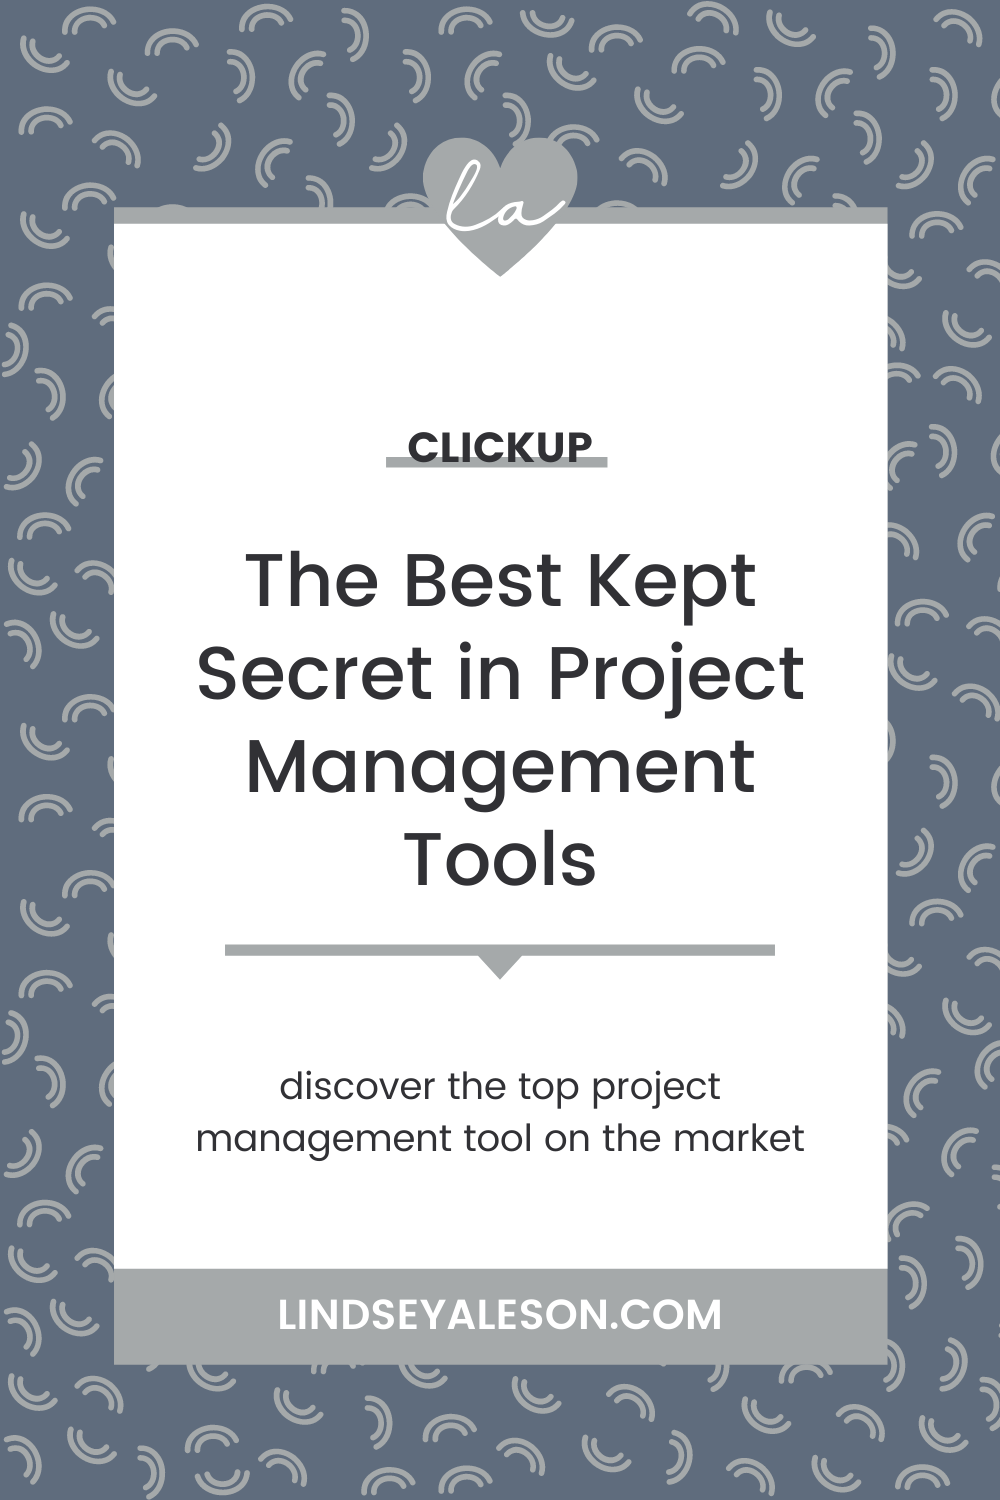 ClickUp: The Best Kept Secret in Project Management Tools